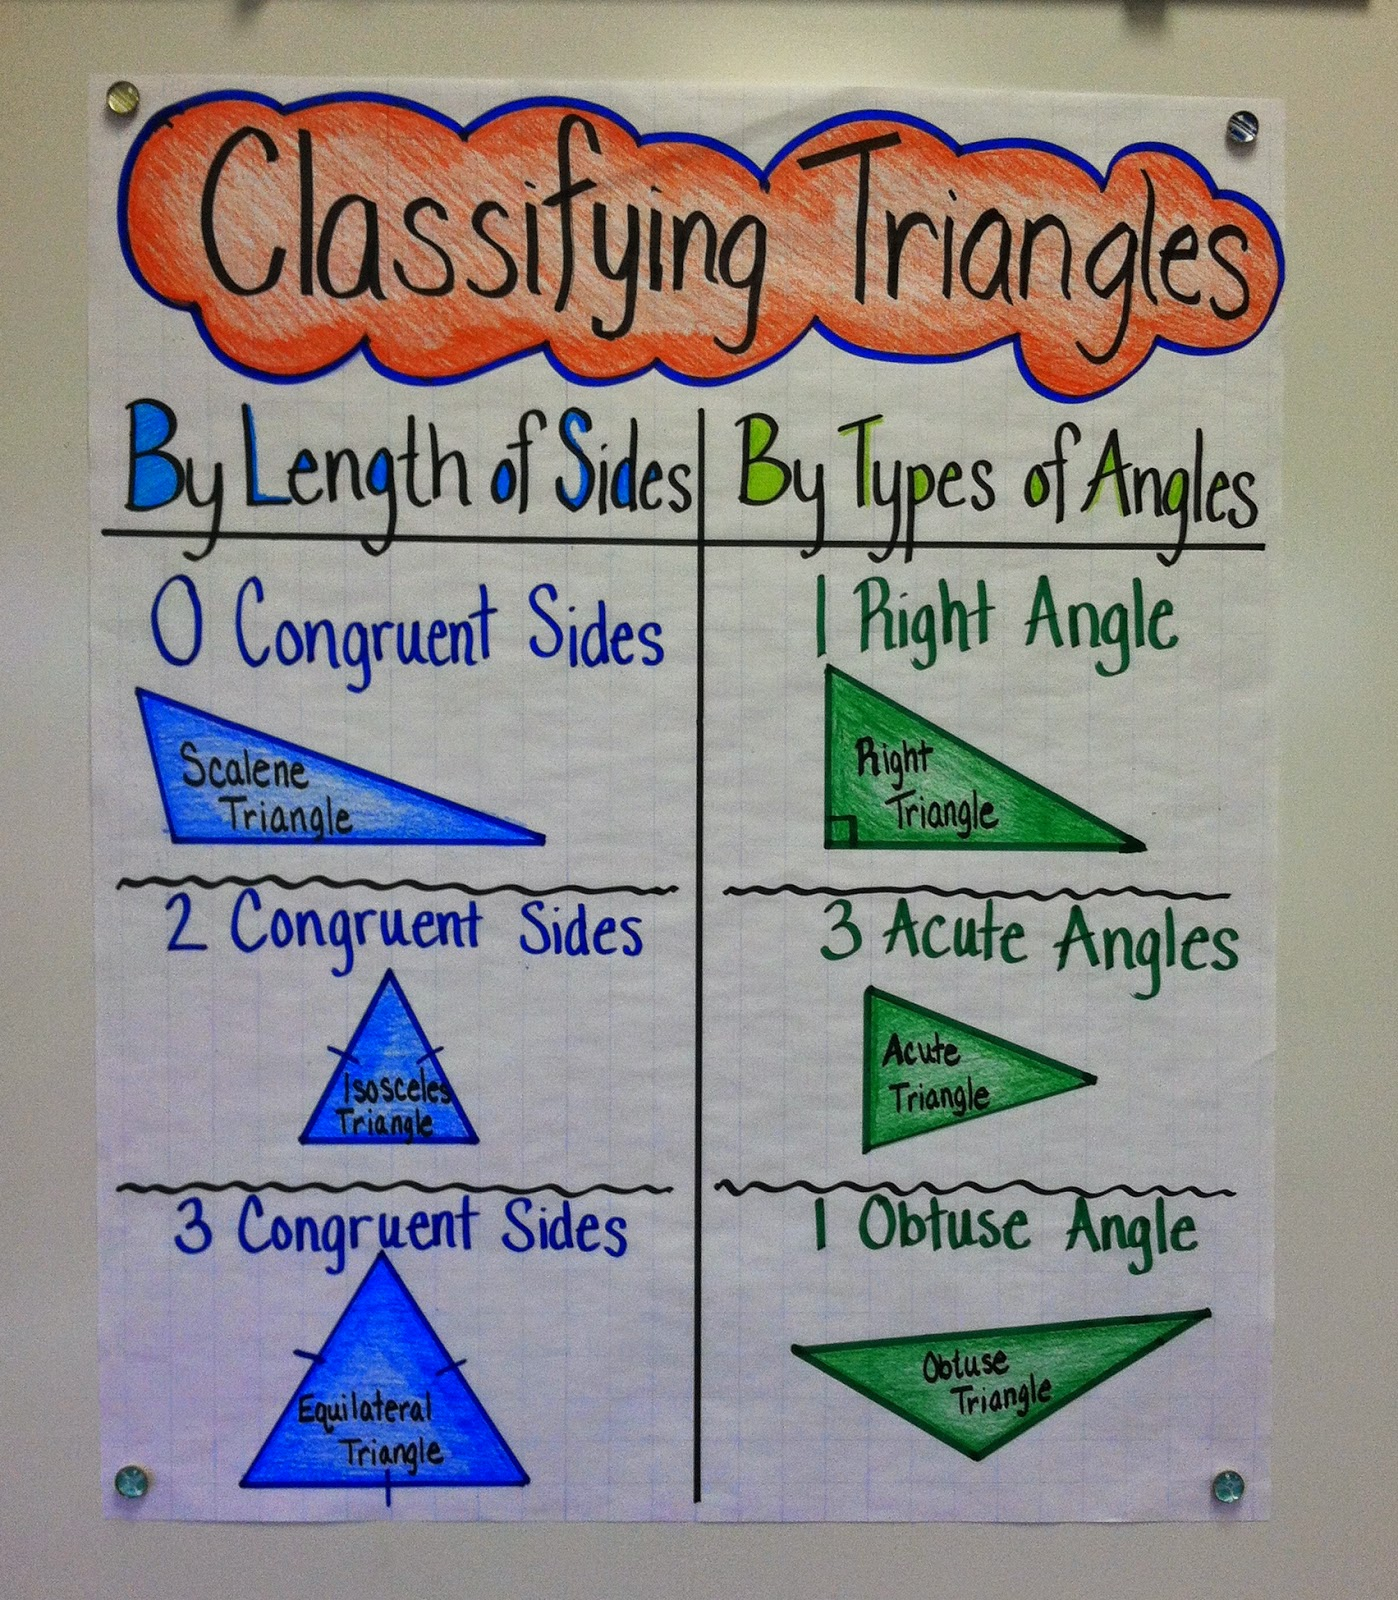 Triangle Classification Made Easy